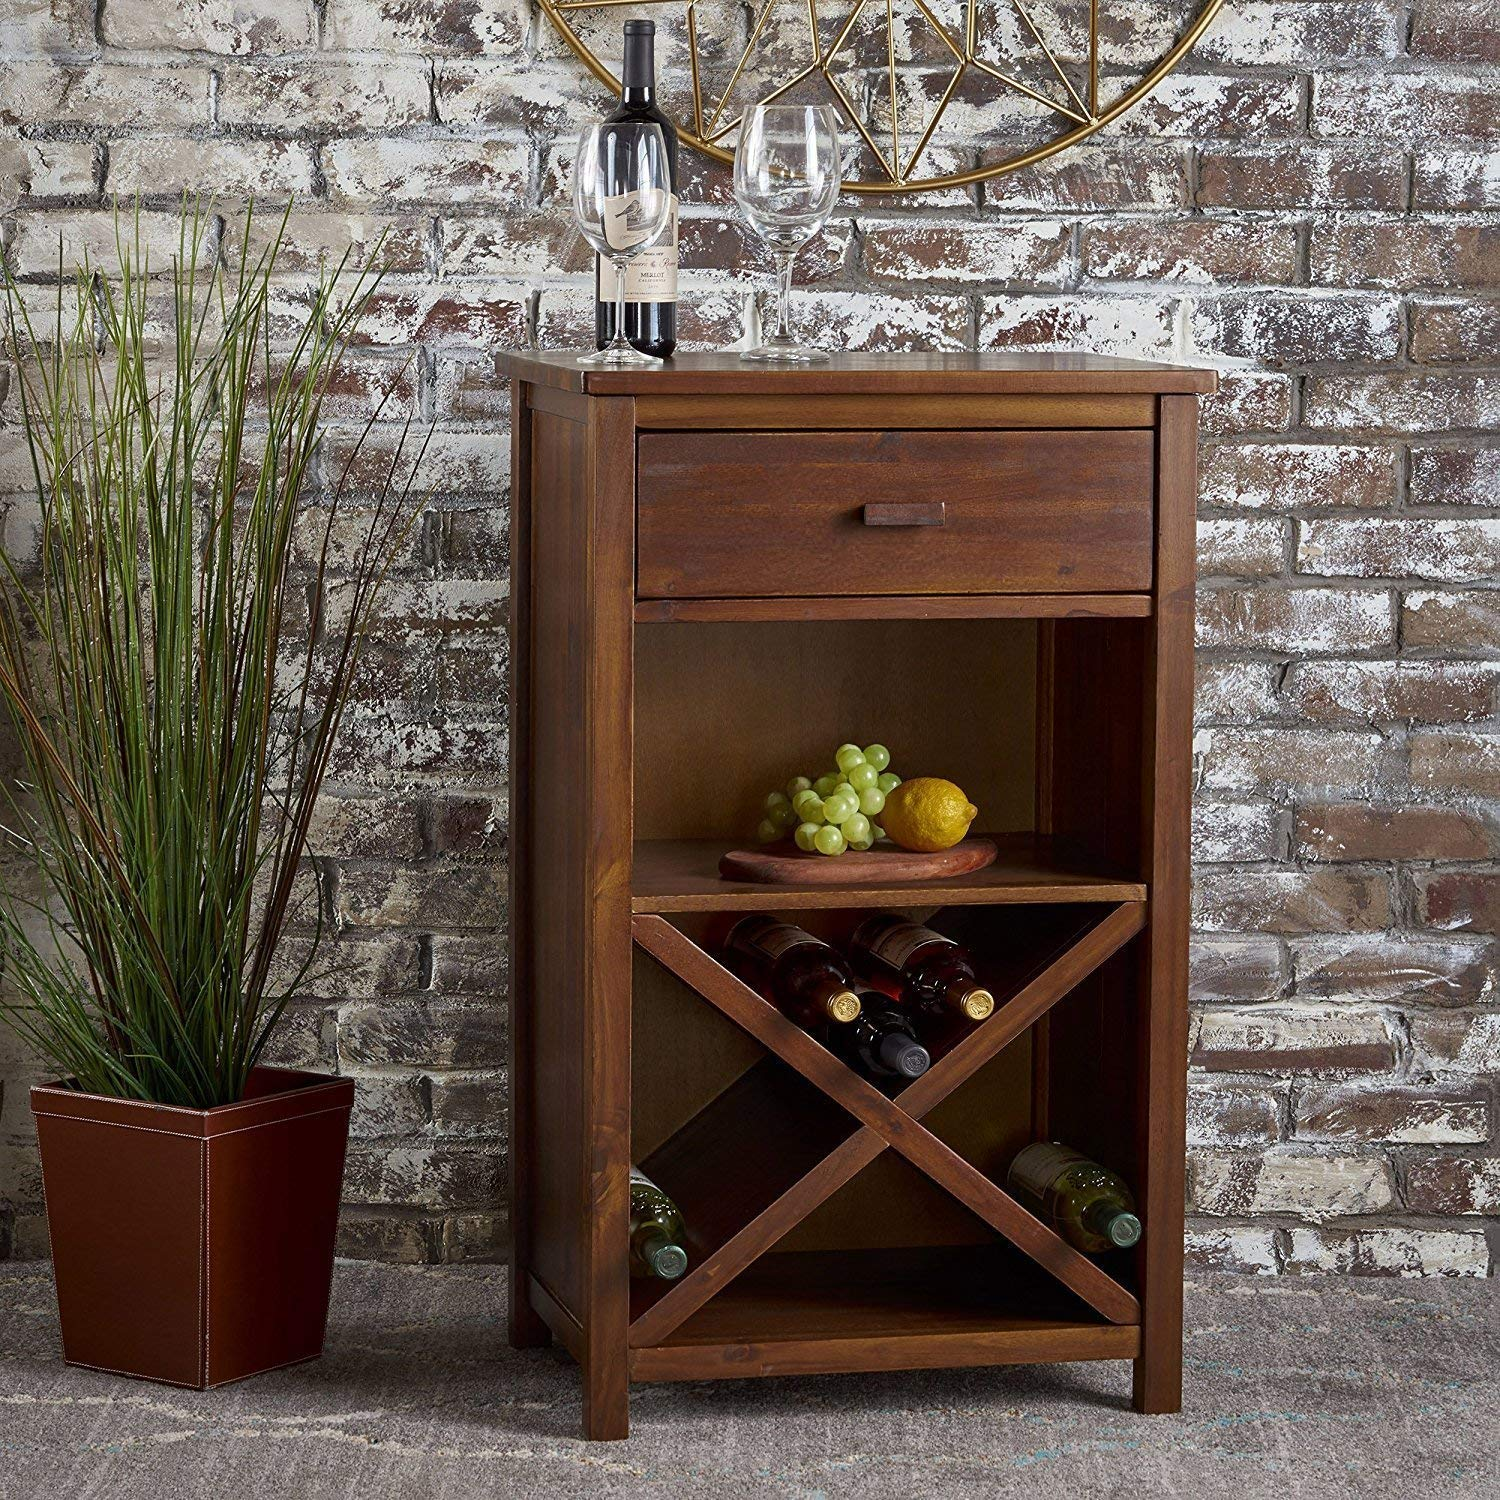 Kazlify Cabinet Wine Rack Beer Bar with Glass Storage (Teak Finish)